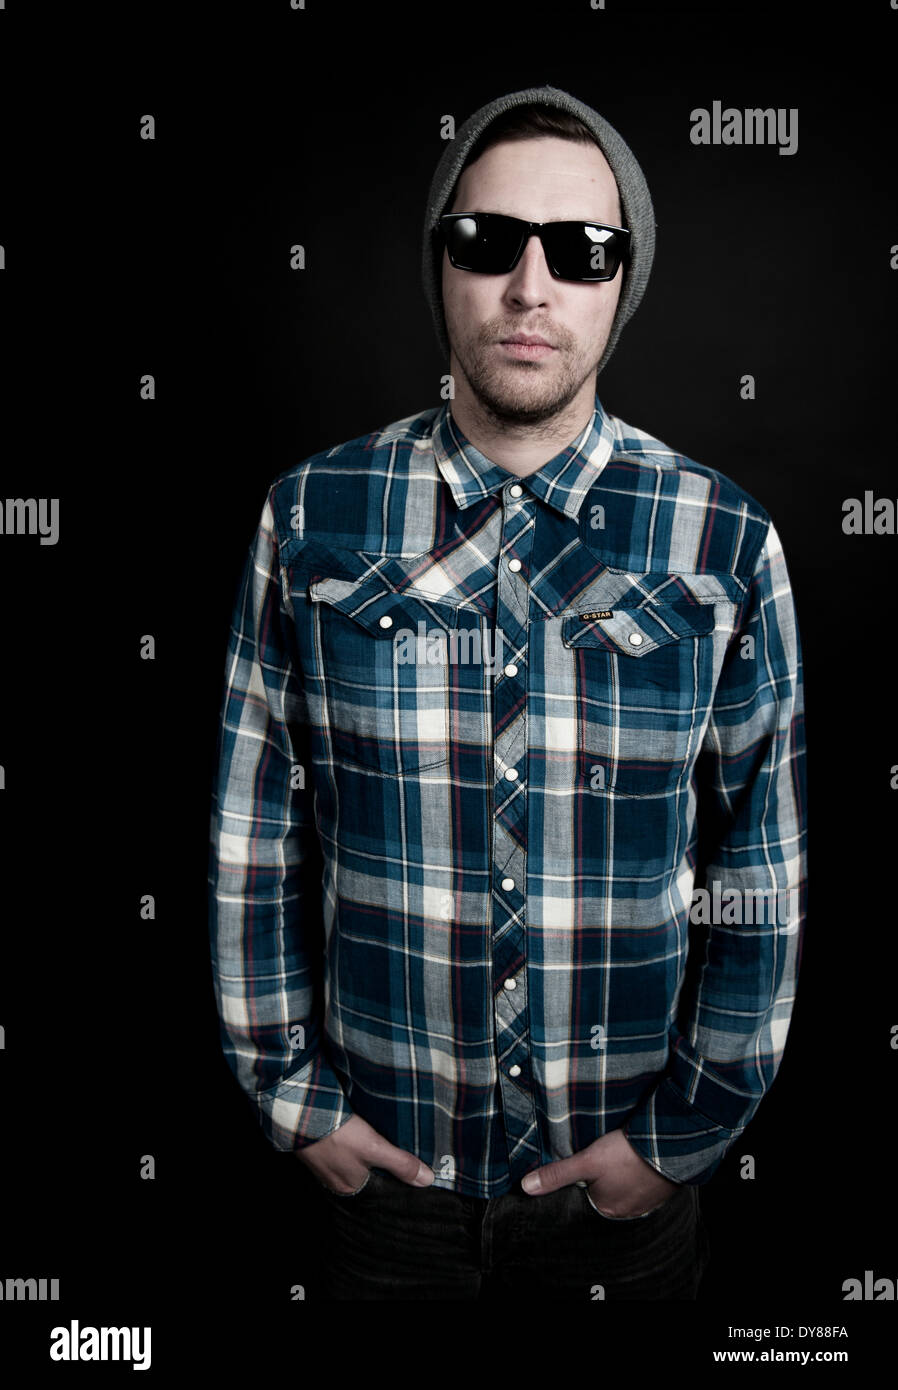 Young man with hat and sunglasses - Stock Image